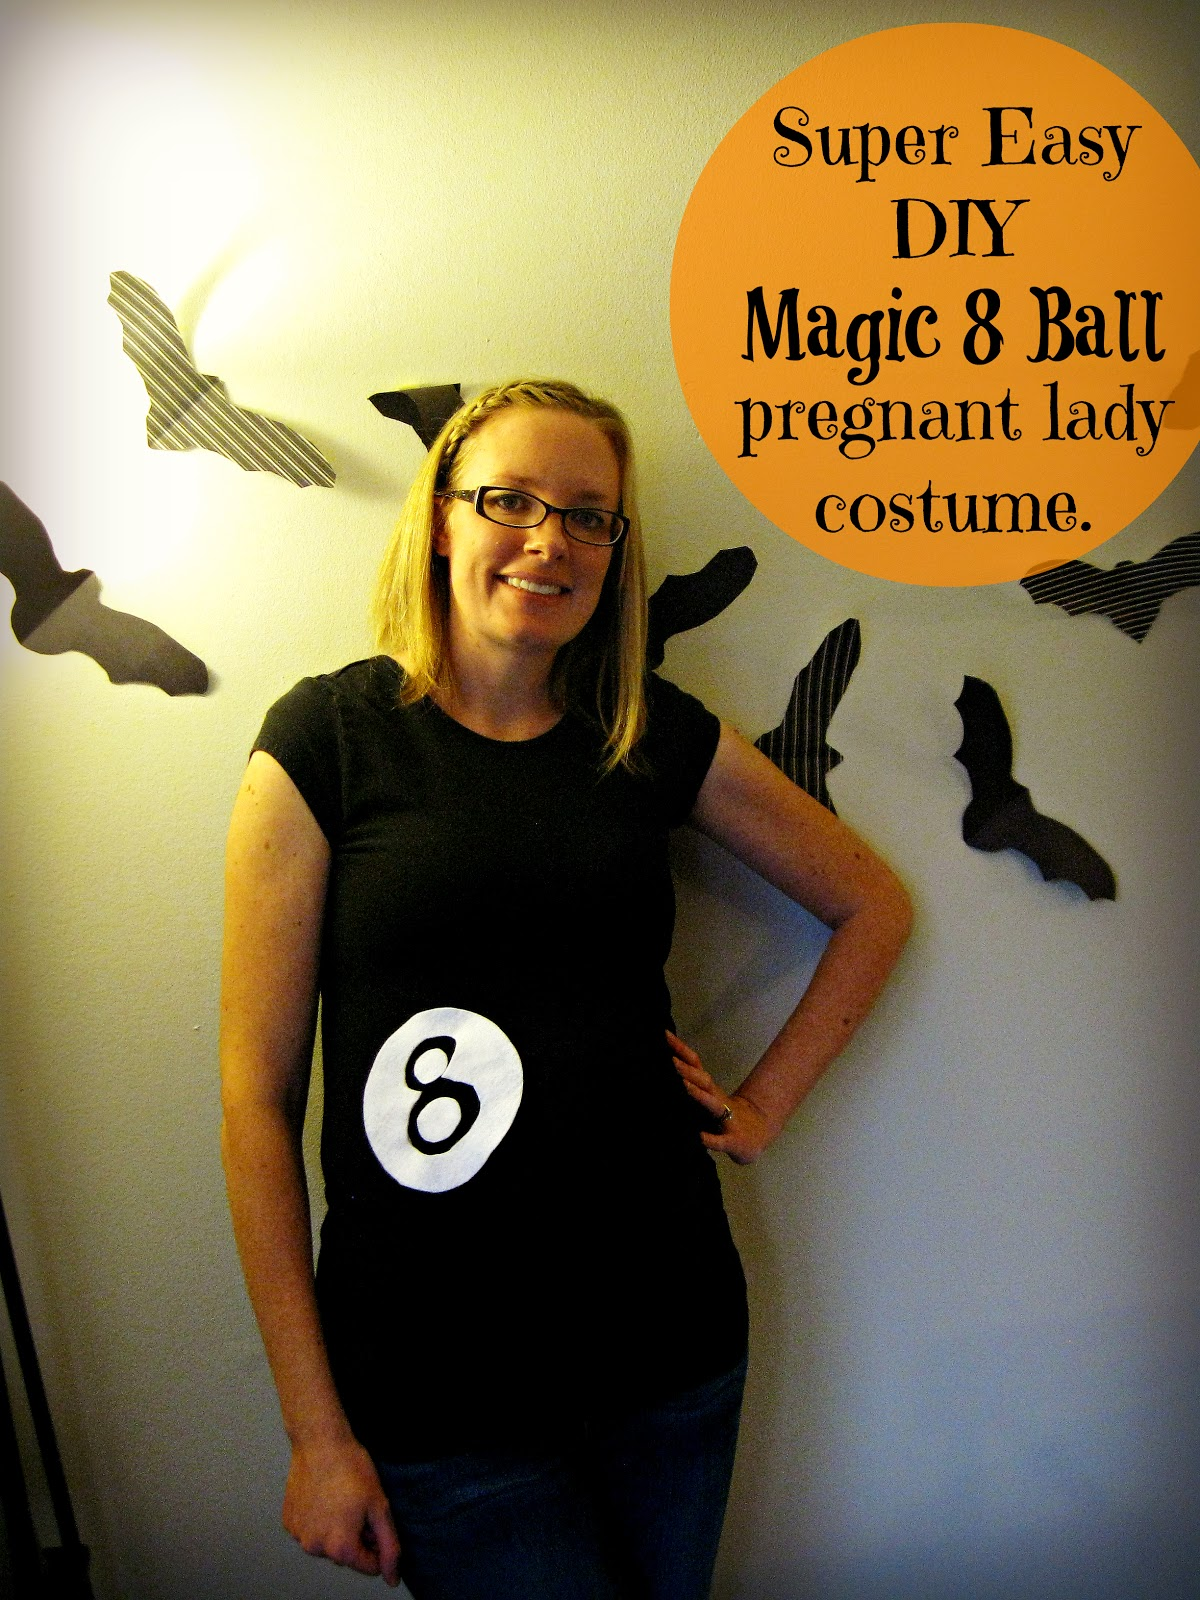 super easy pregnant lady costume - Magic 8 Ball Halloween Costume